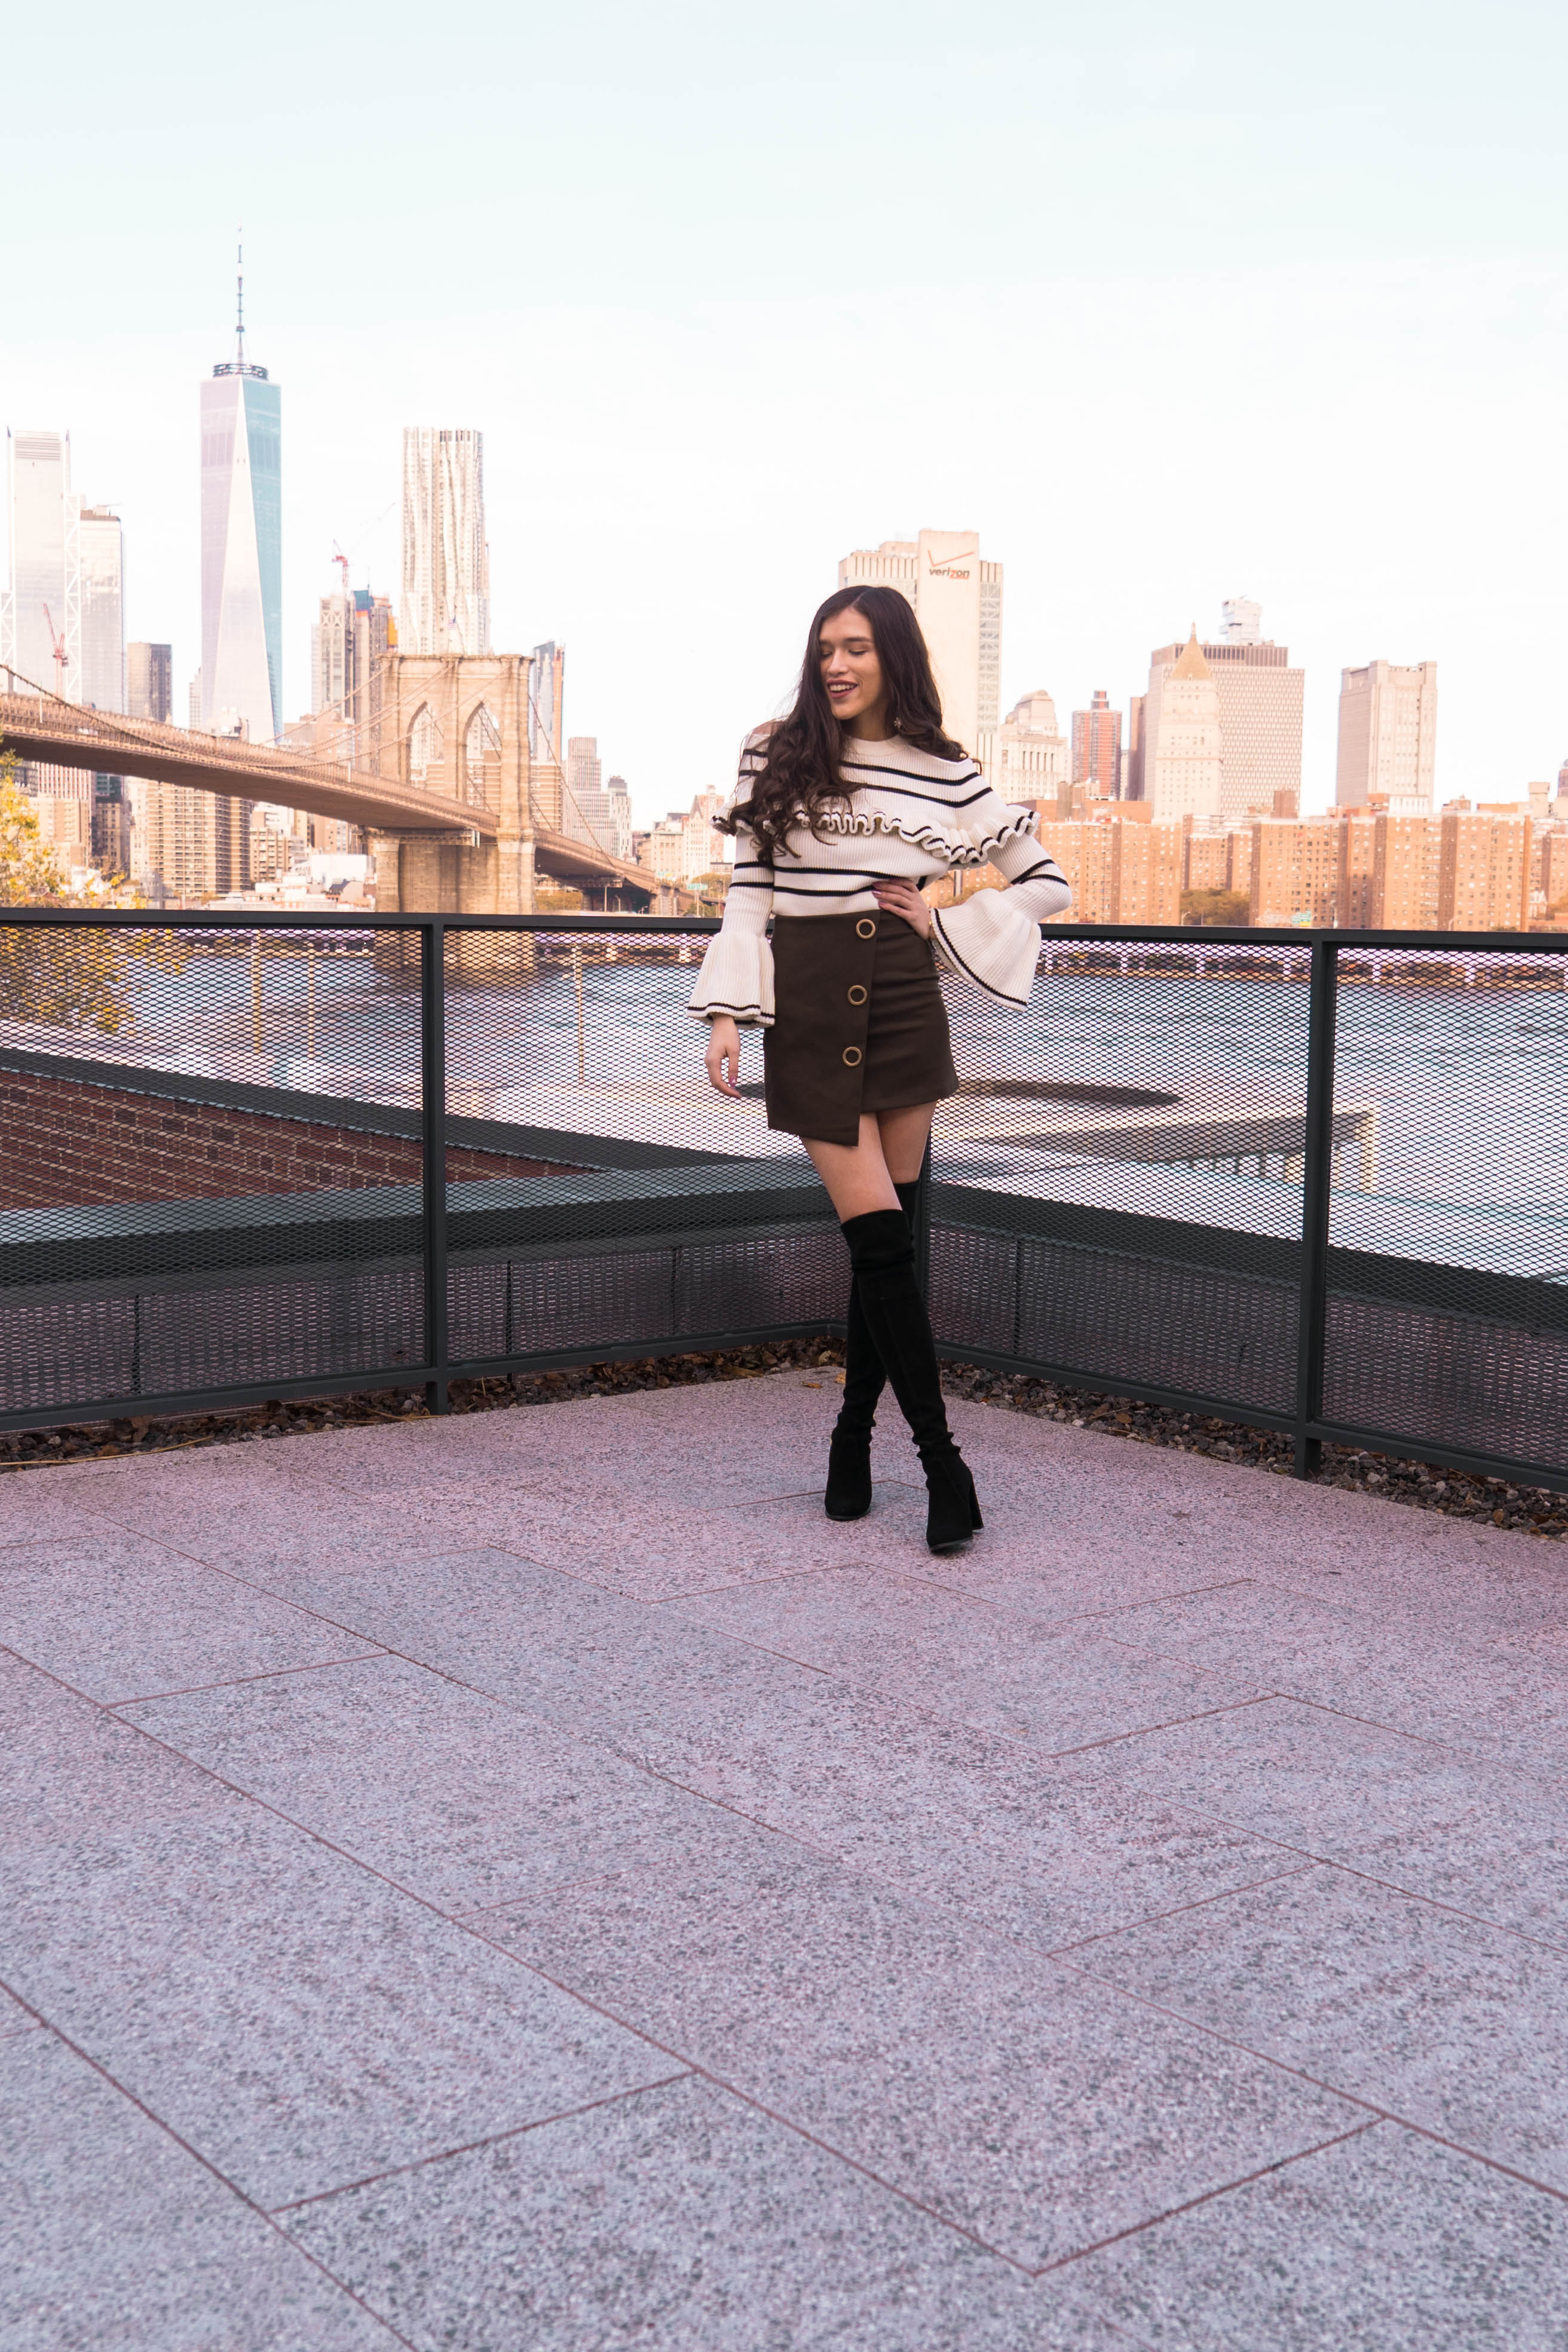 Popular NYC travel and style blogger Eva Phan of Eva Darling in DUMBO Brooklyn Manhattan skyline view roodtop World Trade Center Brooklyn Bridge self portrait bell sleeve sweater army green mini skirt black stuart weitzman hiline over the knee boots otk suede where to go in New York hidden public access rooftop free photography location trendy luxury teen ootd inspiration